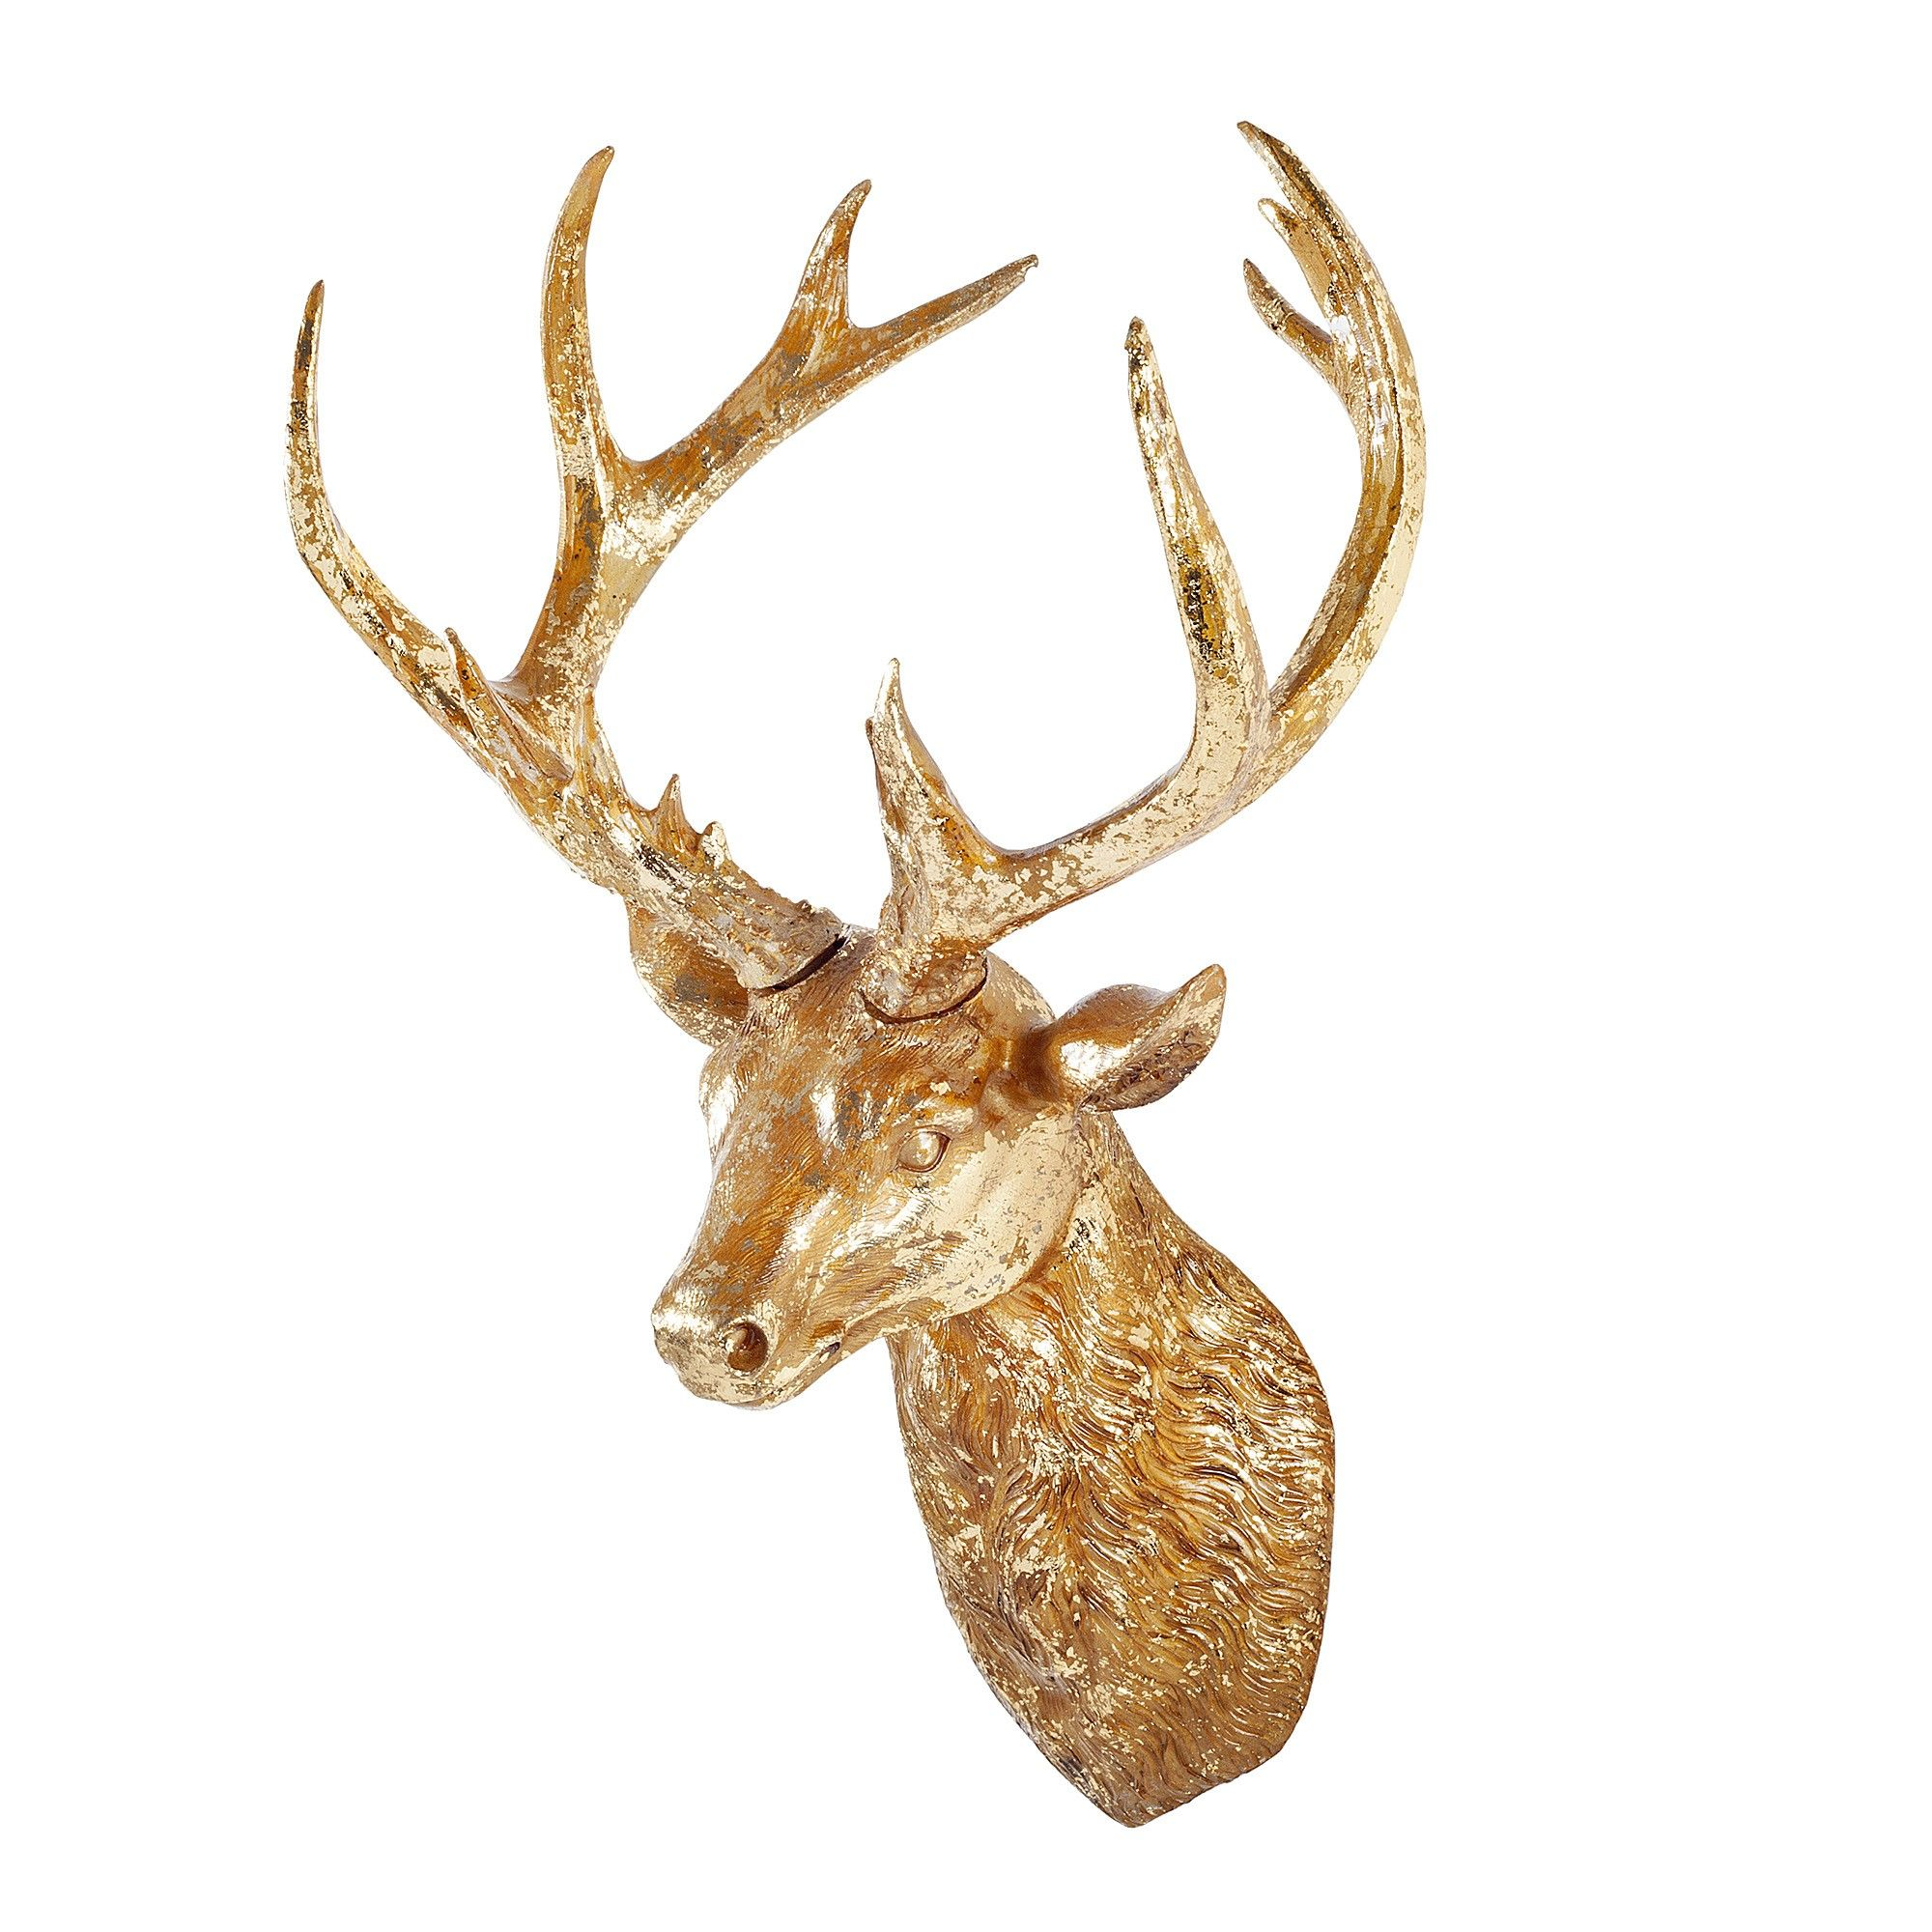 Detailed Antique Gold Finish Resin Stag\'s Head Wall Art   Home ...